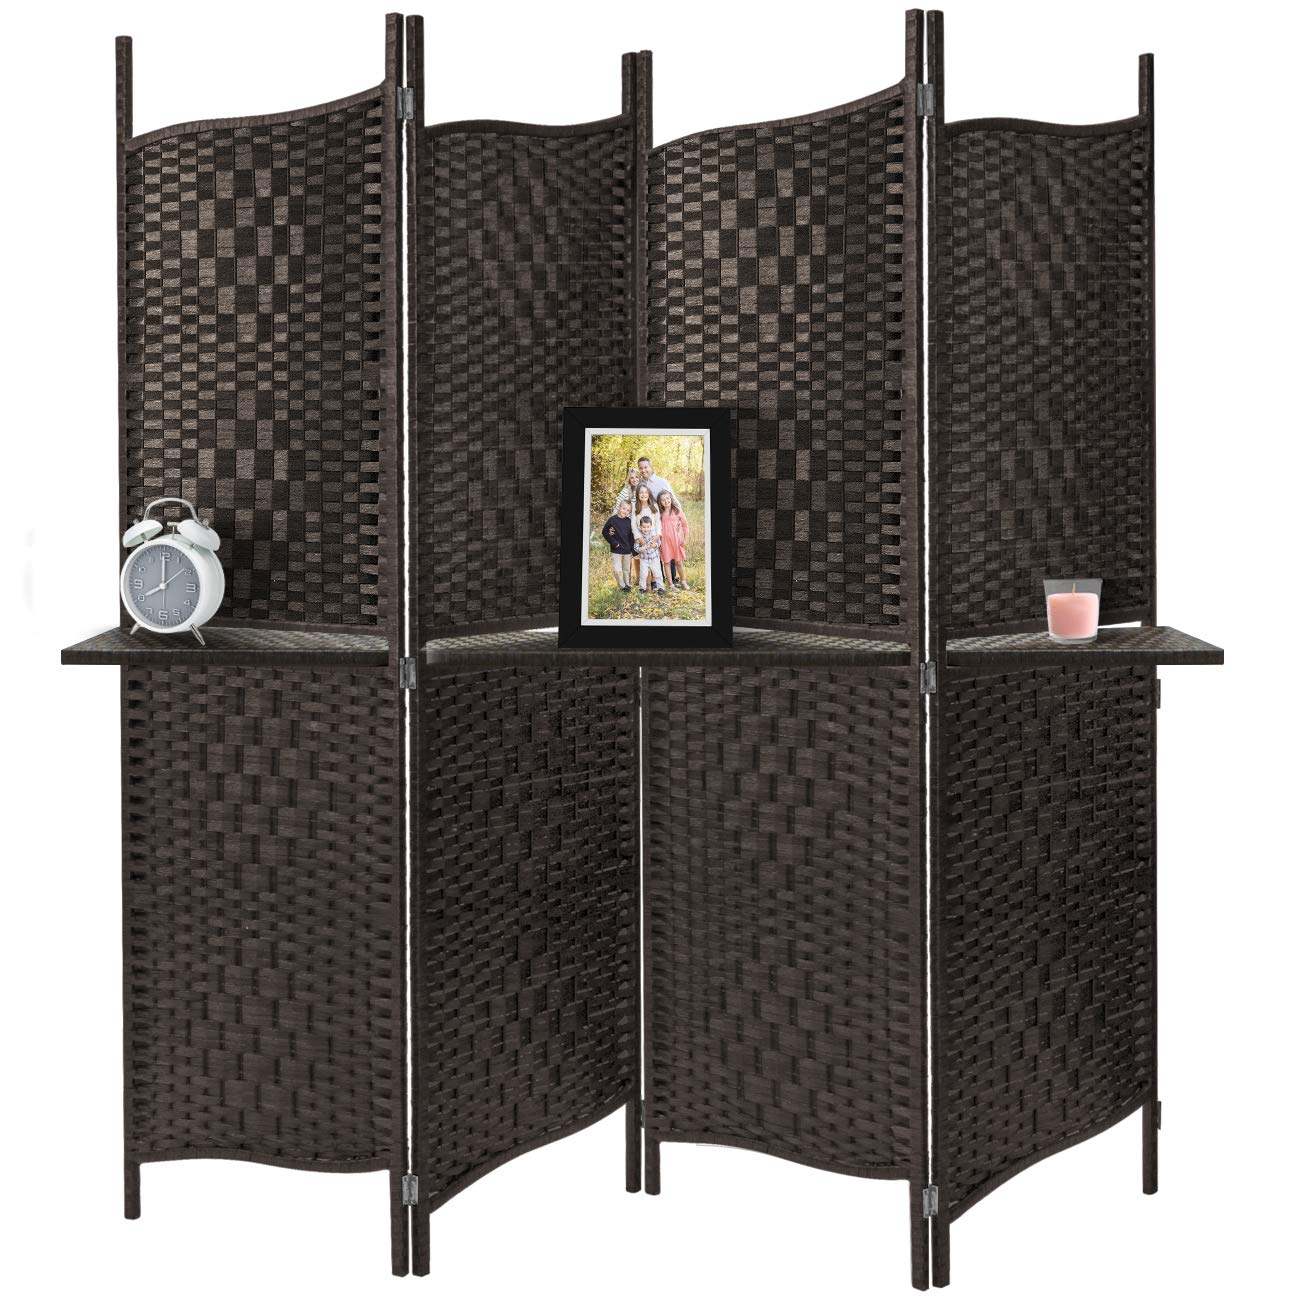 Sorbus Room Divider Privacy Screen, Foldable Panel Partition Wall Divider, Room Dividers and Folding Privacy Screens, Diamond Double-Weaved (Espresso Brown (Curve Shelf)) by Sorbus